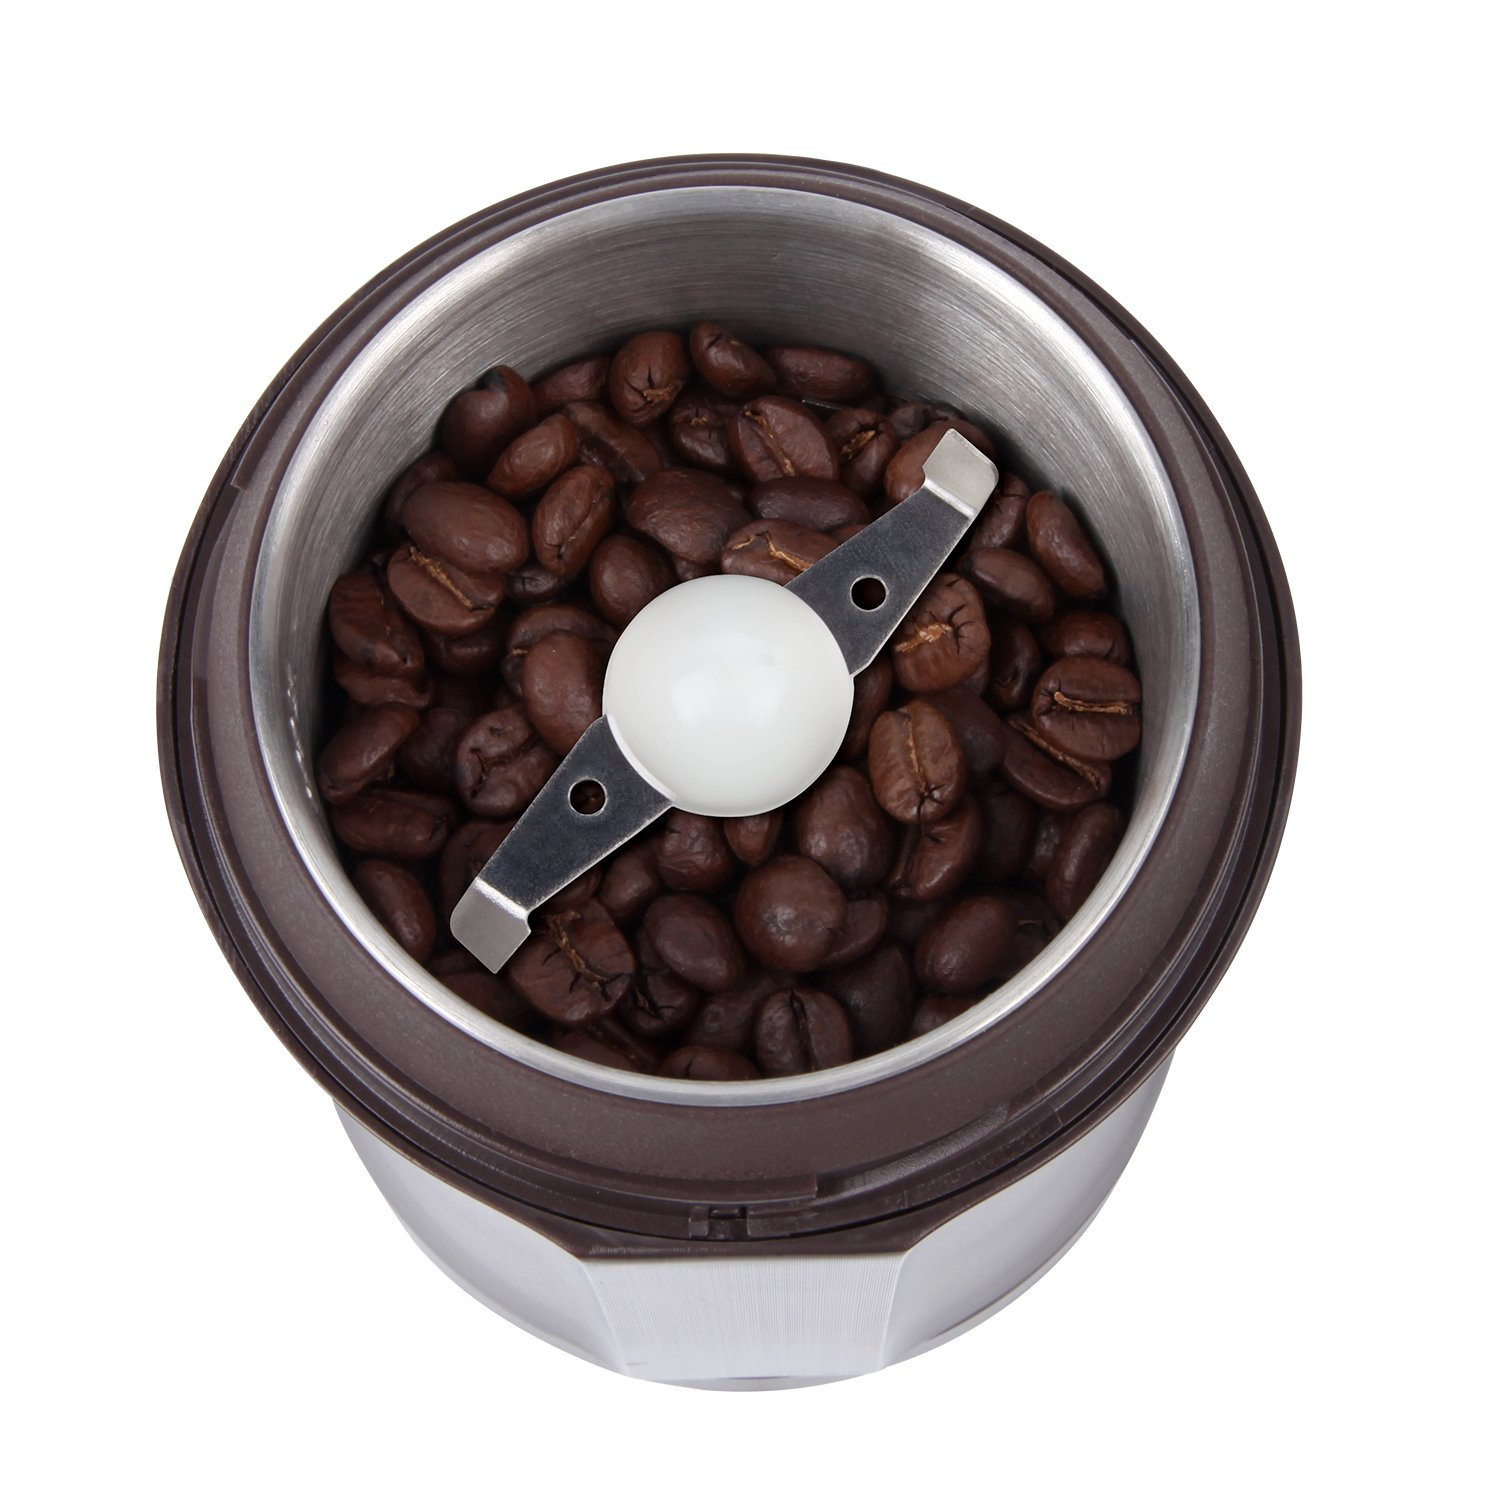 AMOVEE Electric Coffee Grinder with Stainless Steel Blades for Coffee Beans, Spice, Nuts, Herbs, Pepper and Grains, Brown, 200W, Cleaning Brush Included by AmoVee (Image #3)